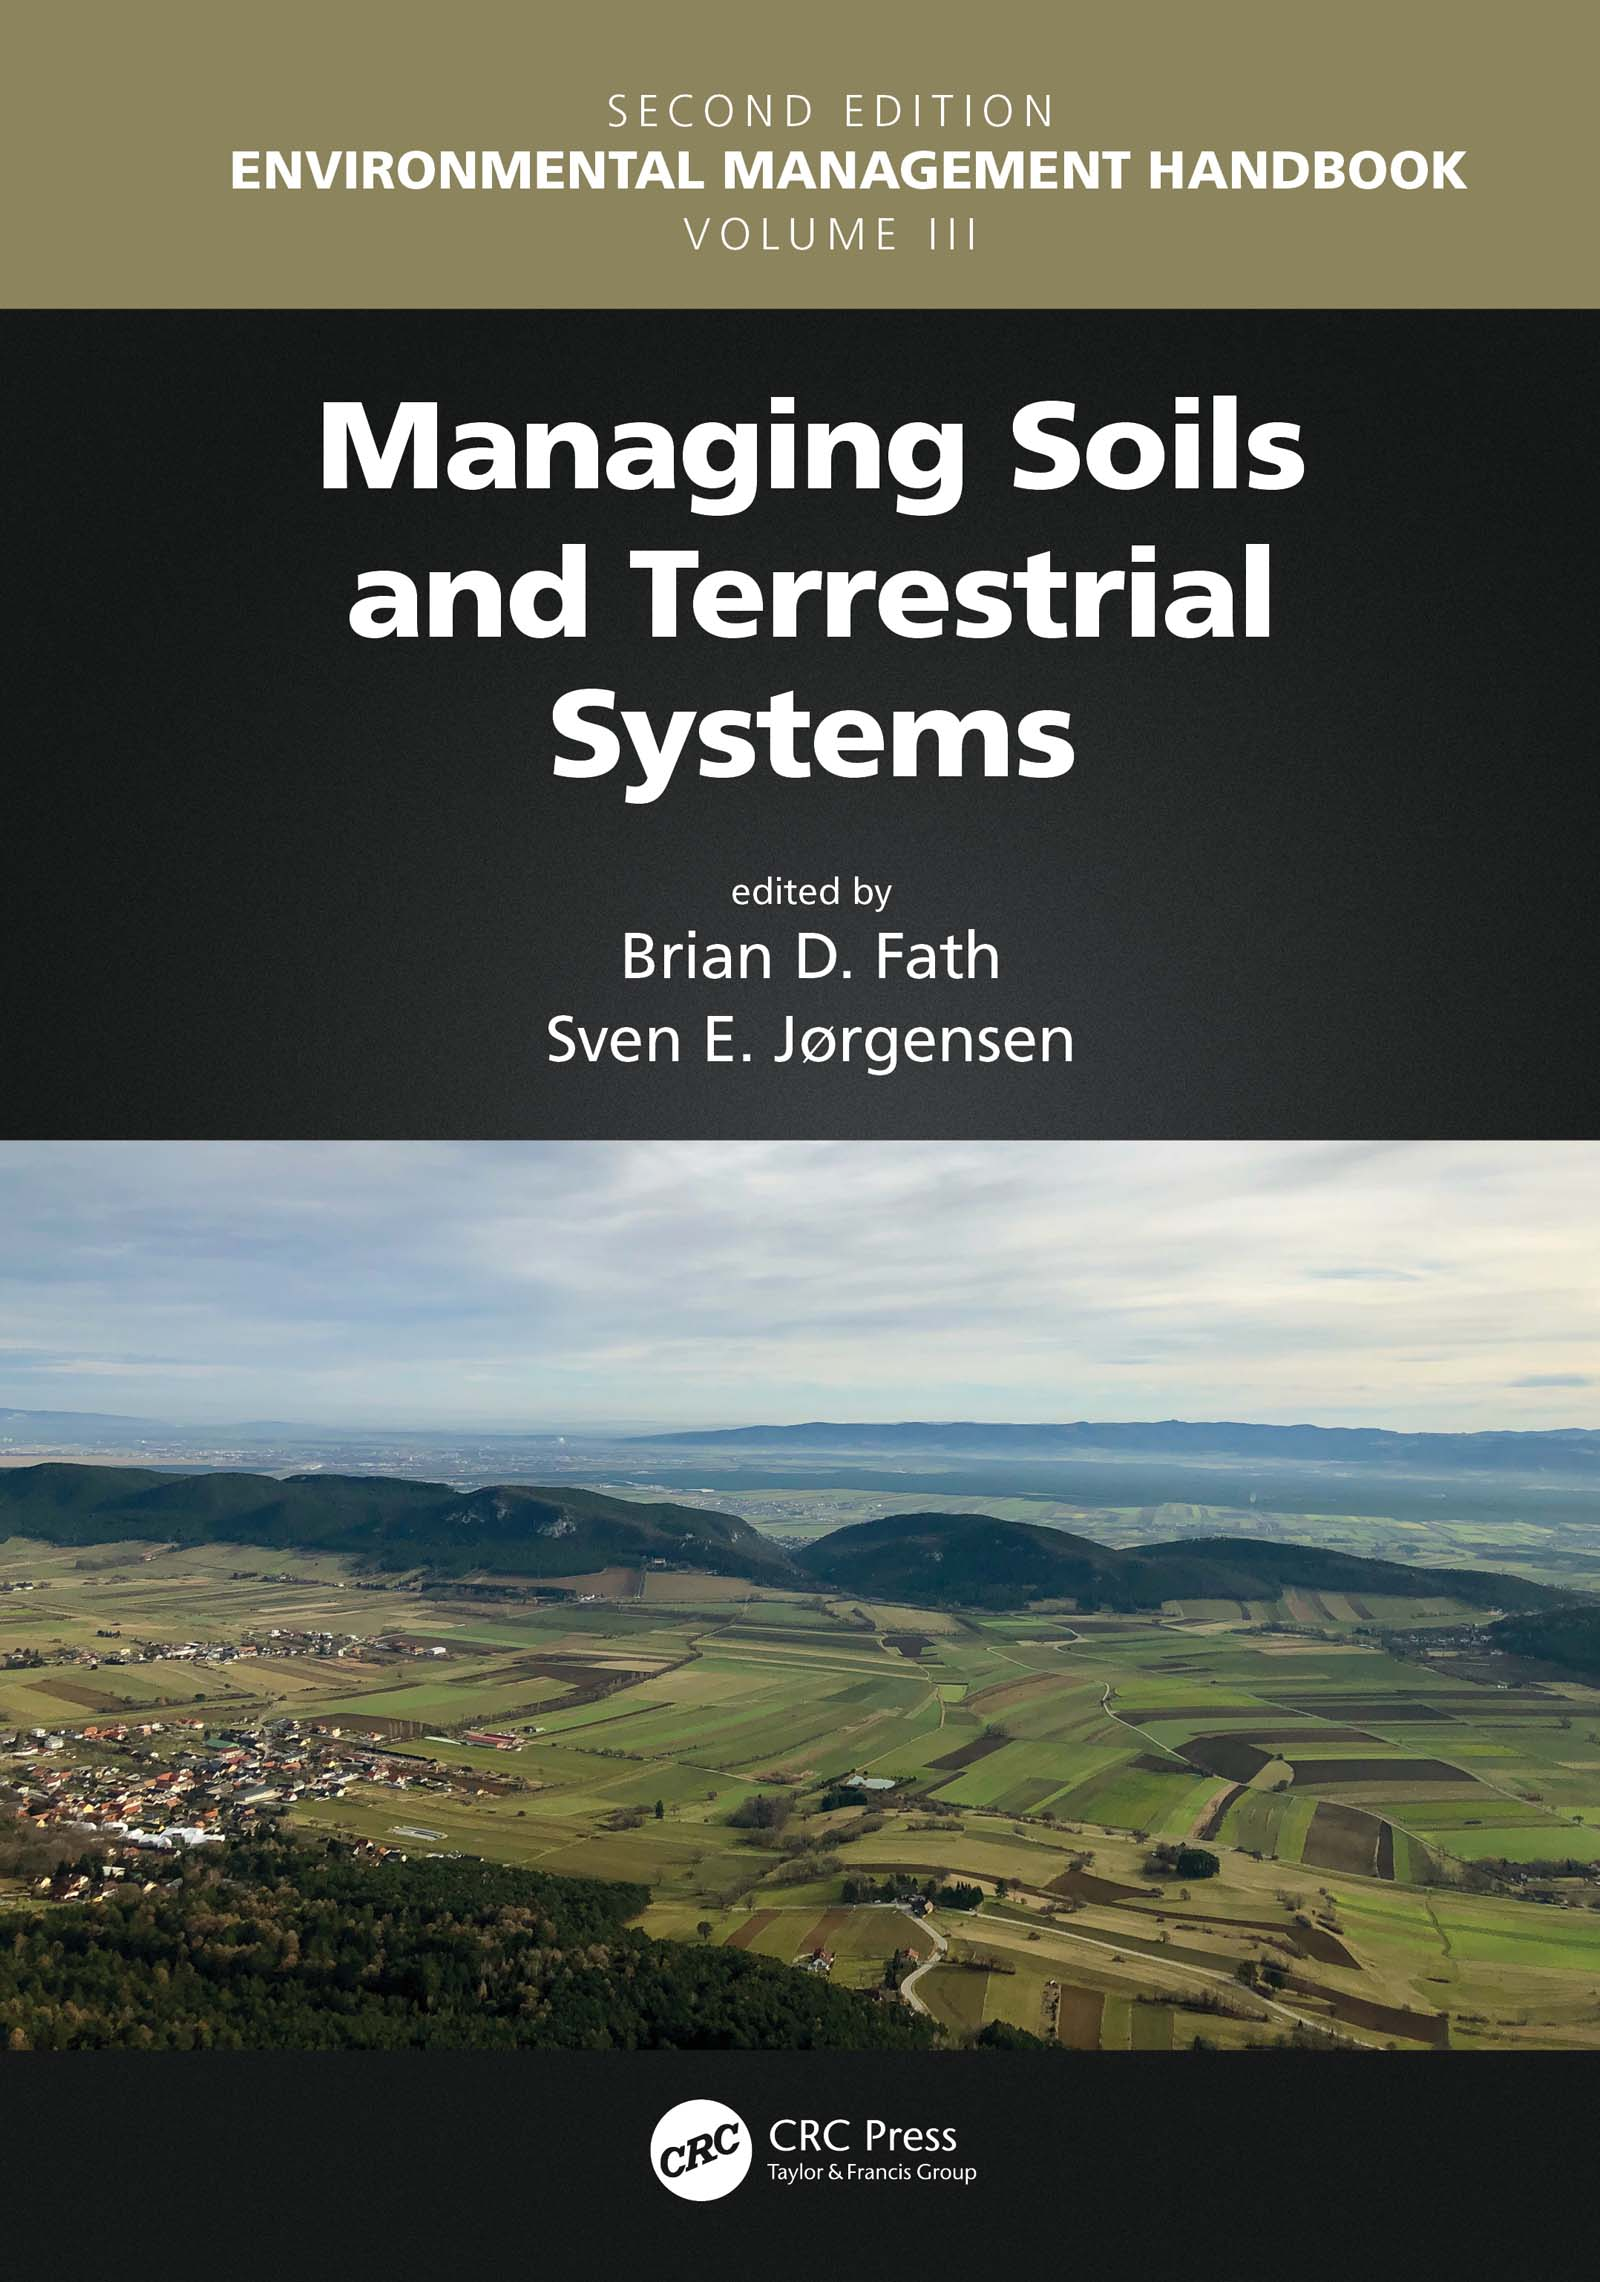 Managing Soils and Terrestrial Systems